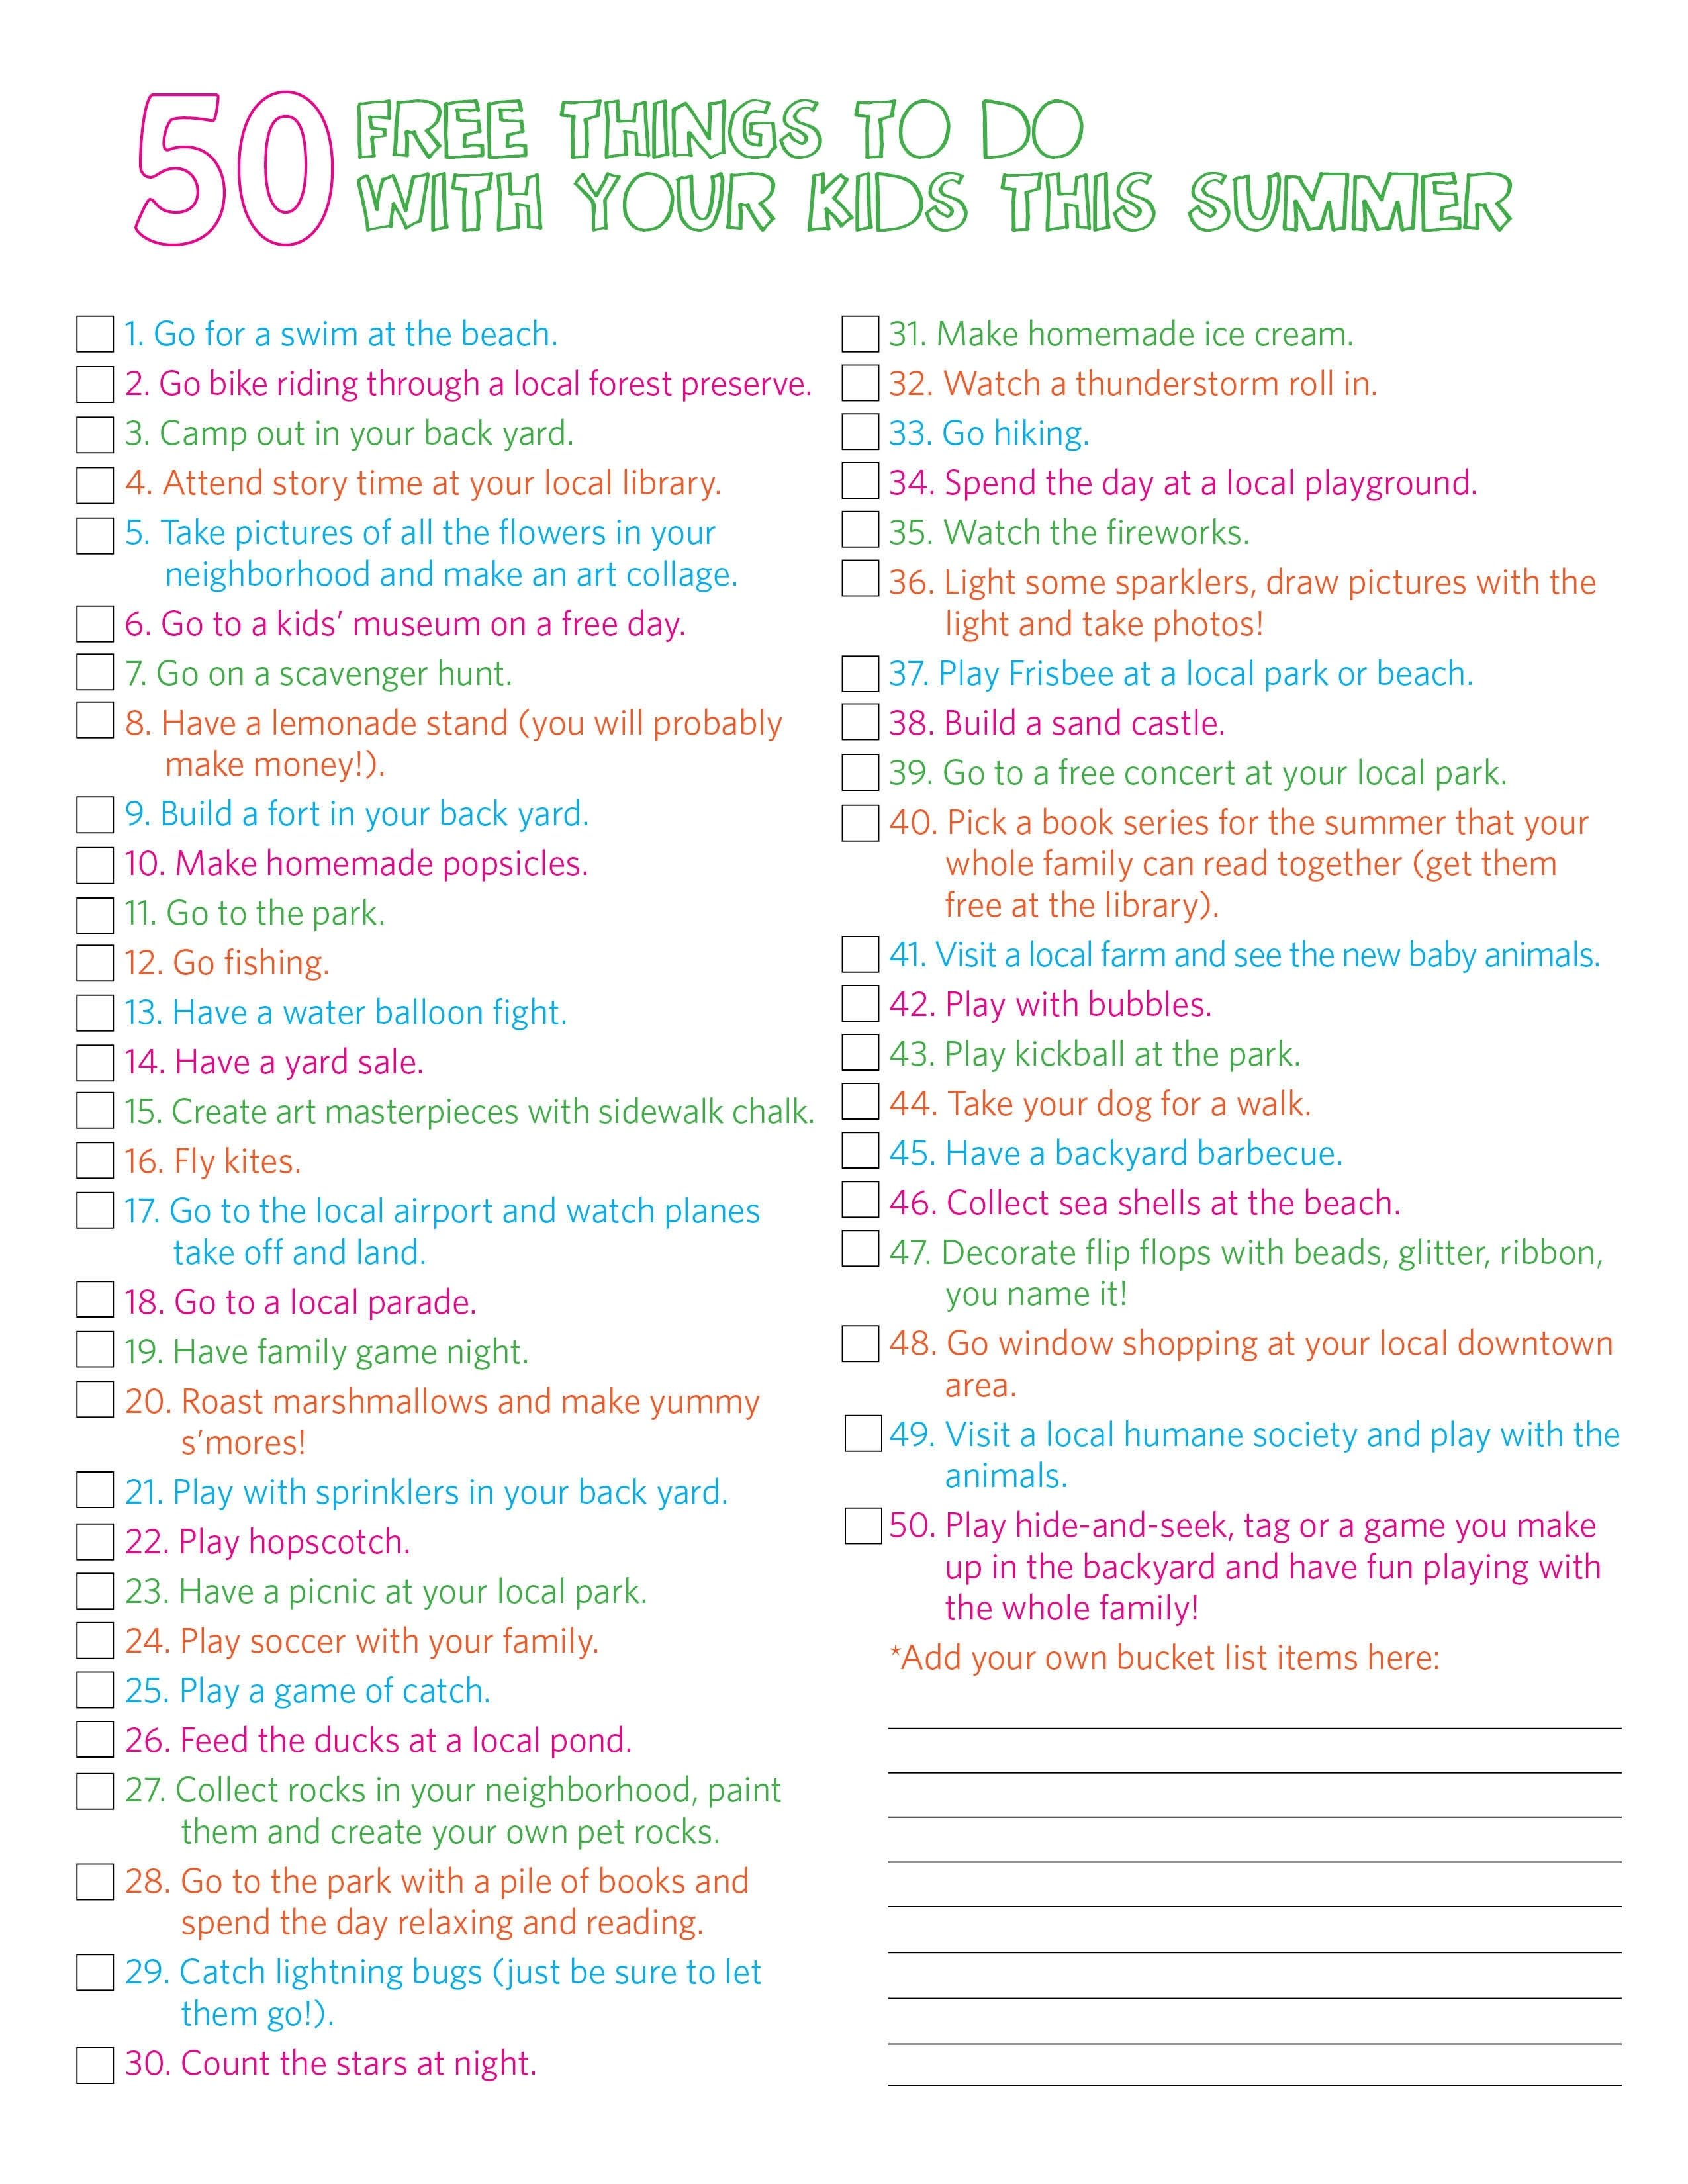 10 Unique Bucket List Ideas For Teenage Girls 50 free bucket list simply real moms 2 2020